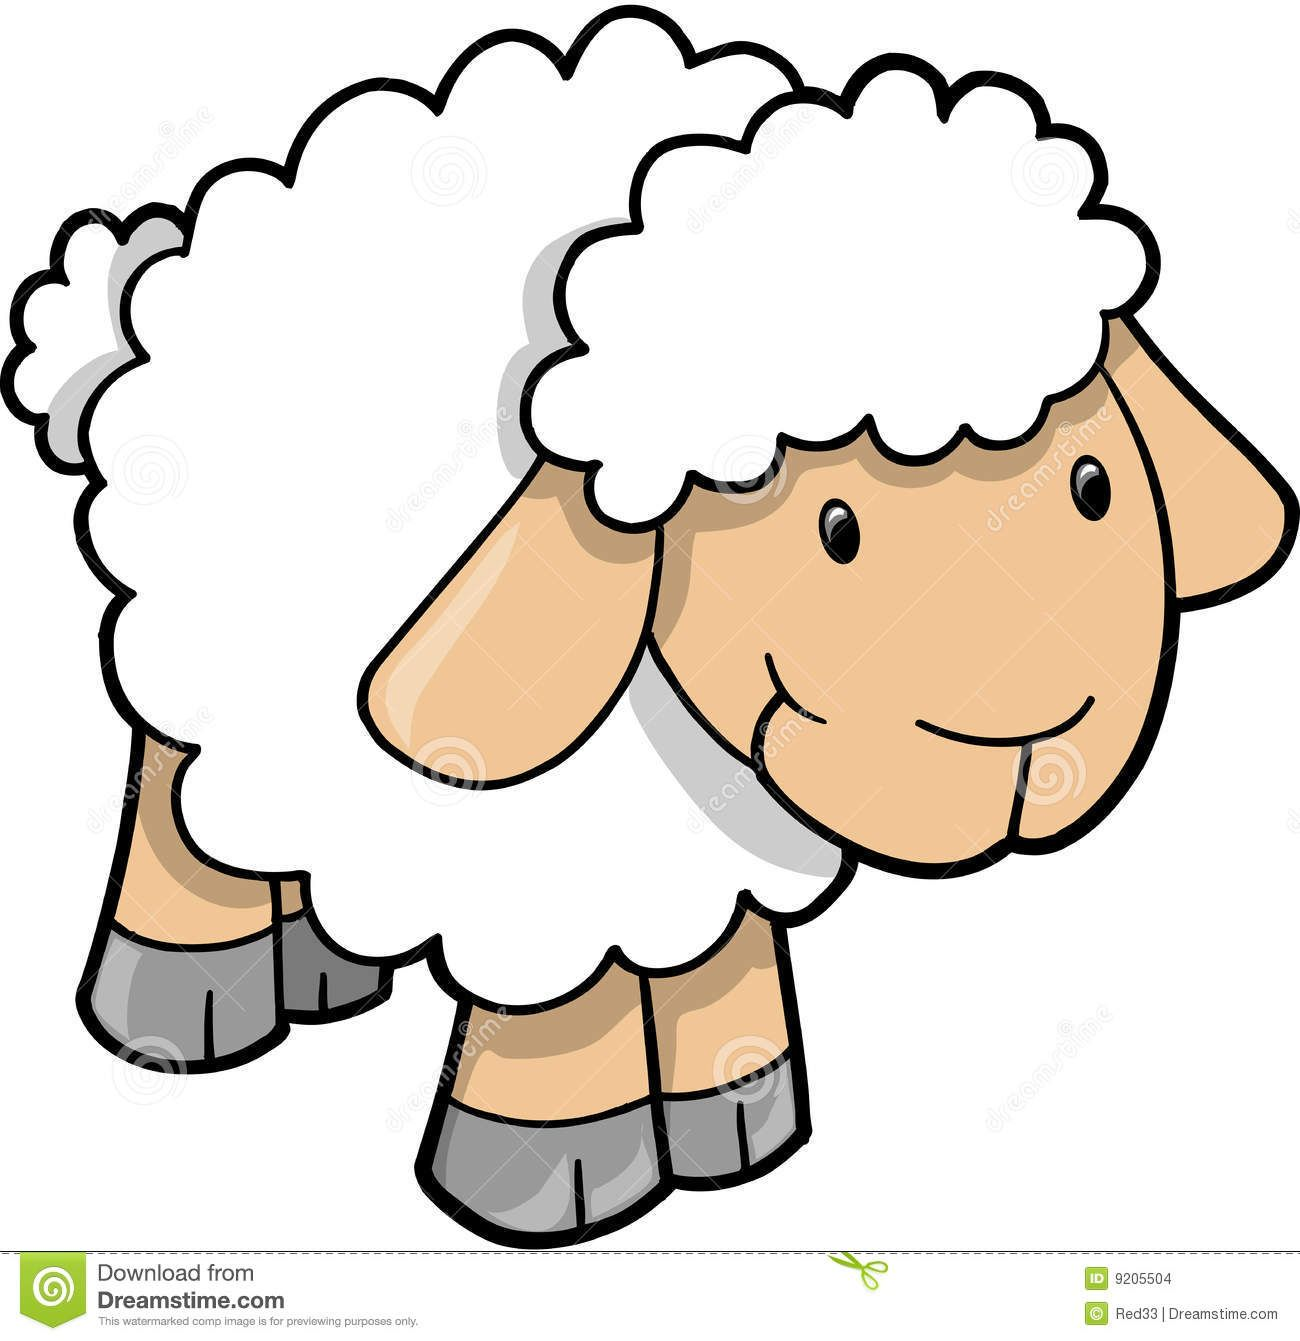 Cute Sheep Drawing Tumblr Cute Sheep Images Cute Sheep Lamb Vector Stock Images